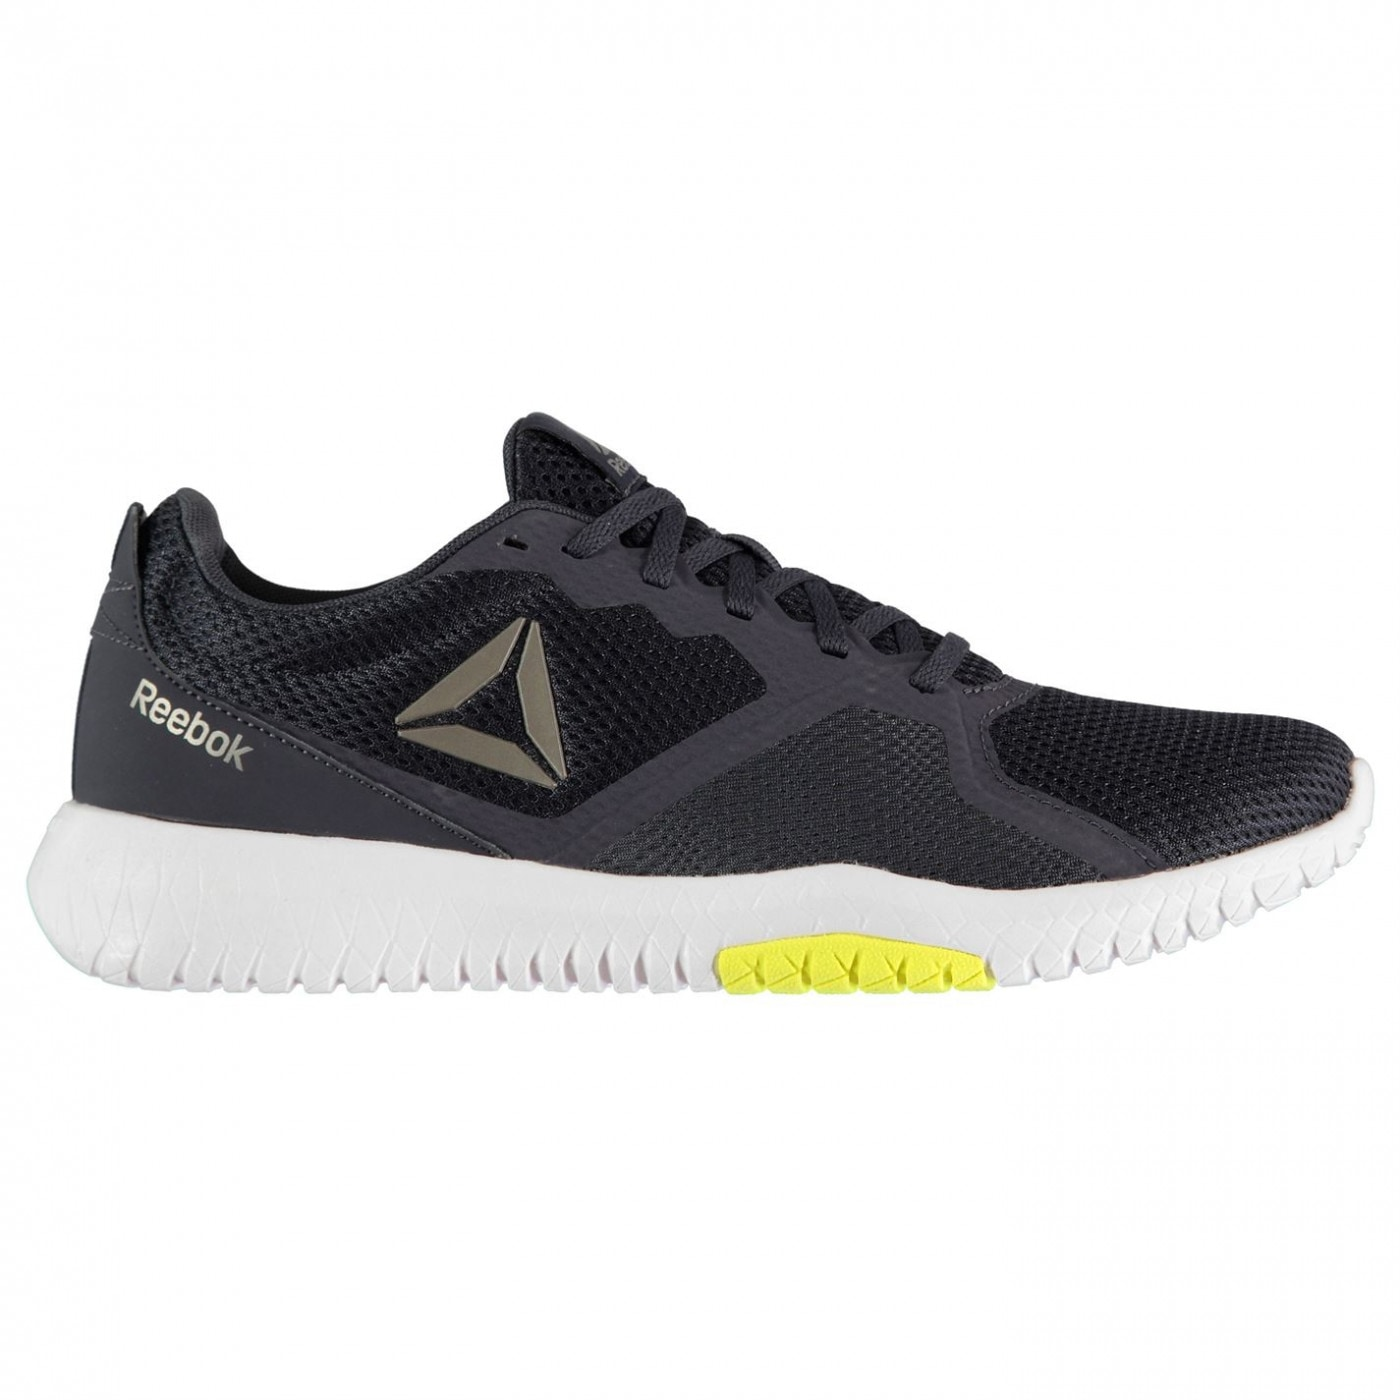 Reebok Flexagon Force Mens Training Shoes